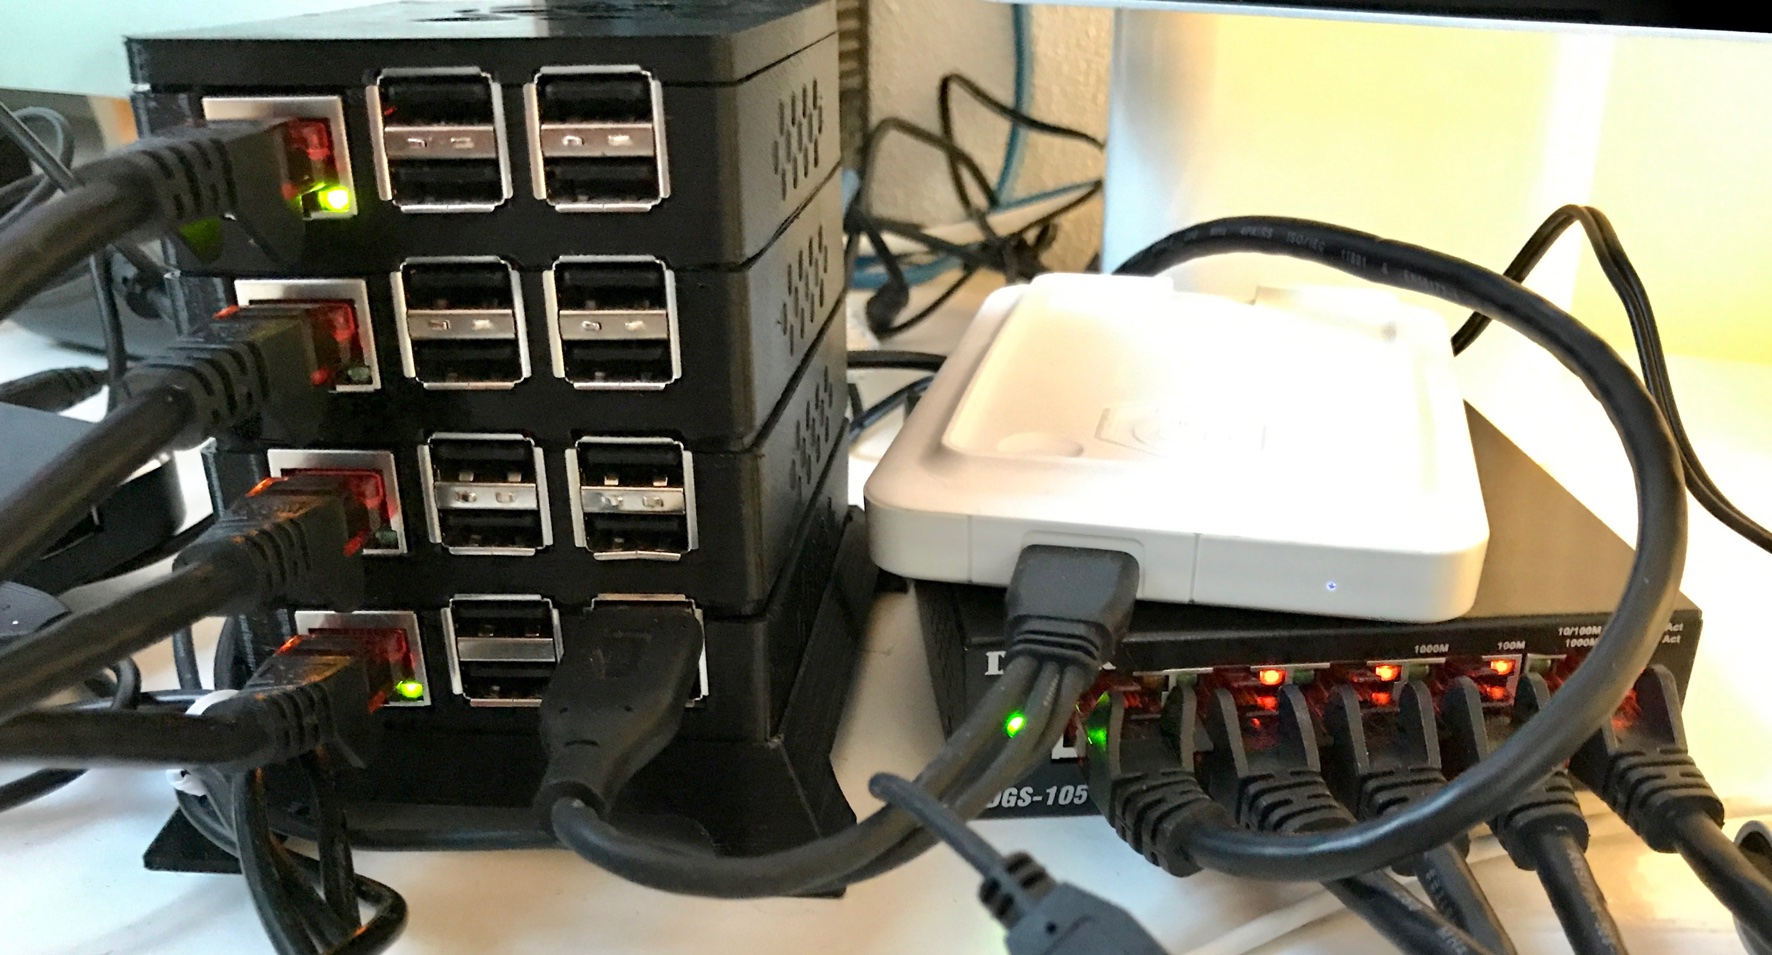 Running a Docker Swarm on a Raspberry Pi Cluster